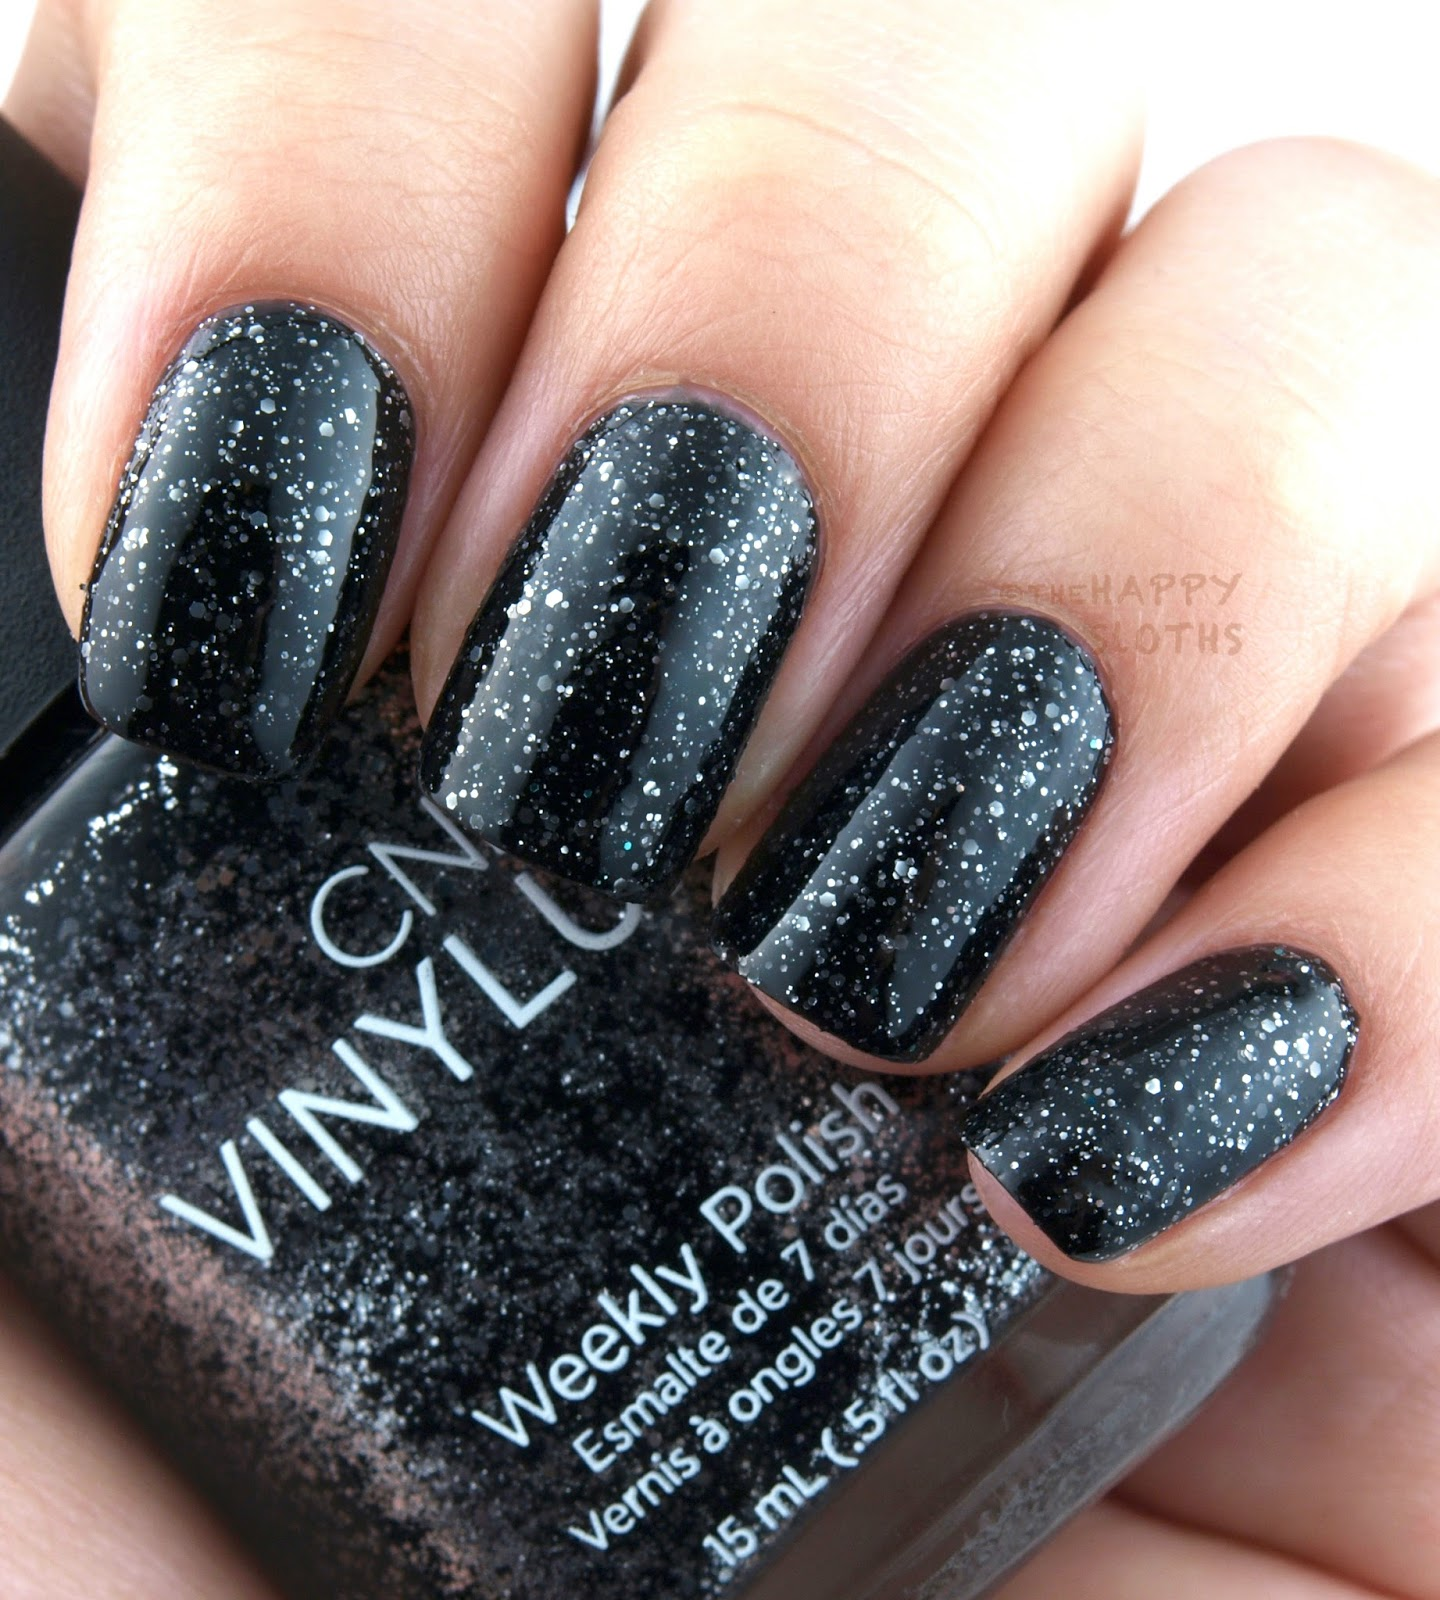 CND Holiday 2016 Starstruck Collection: Review and Swatches